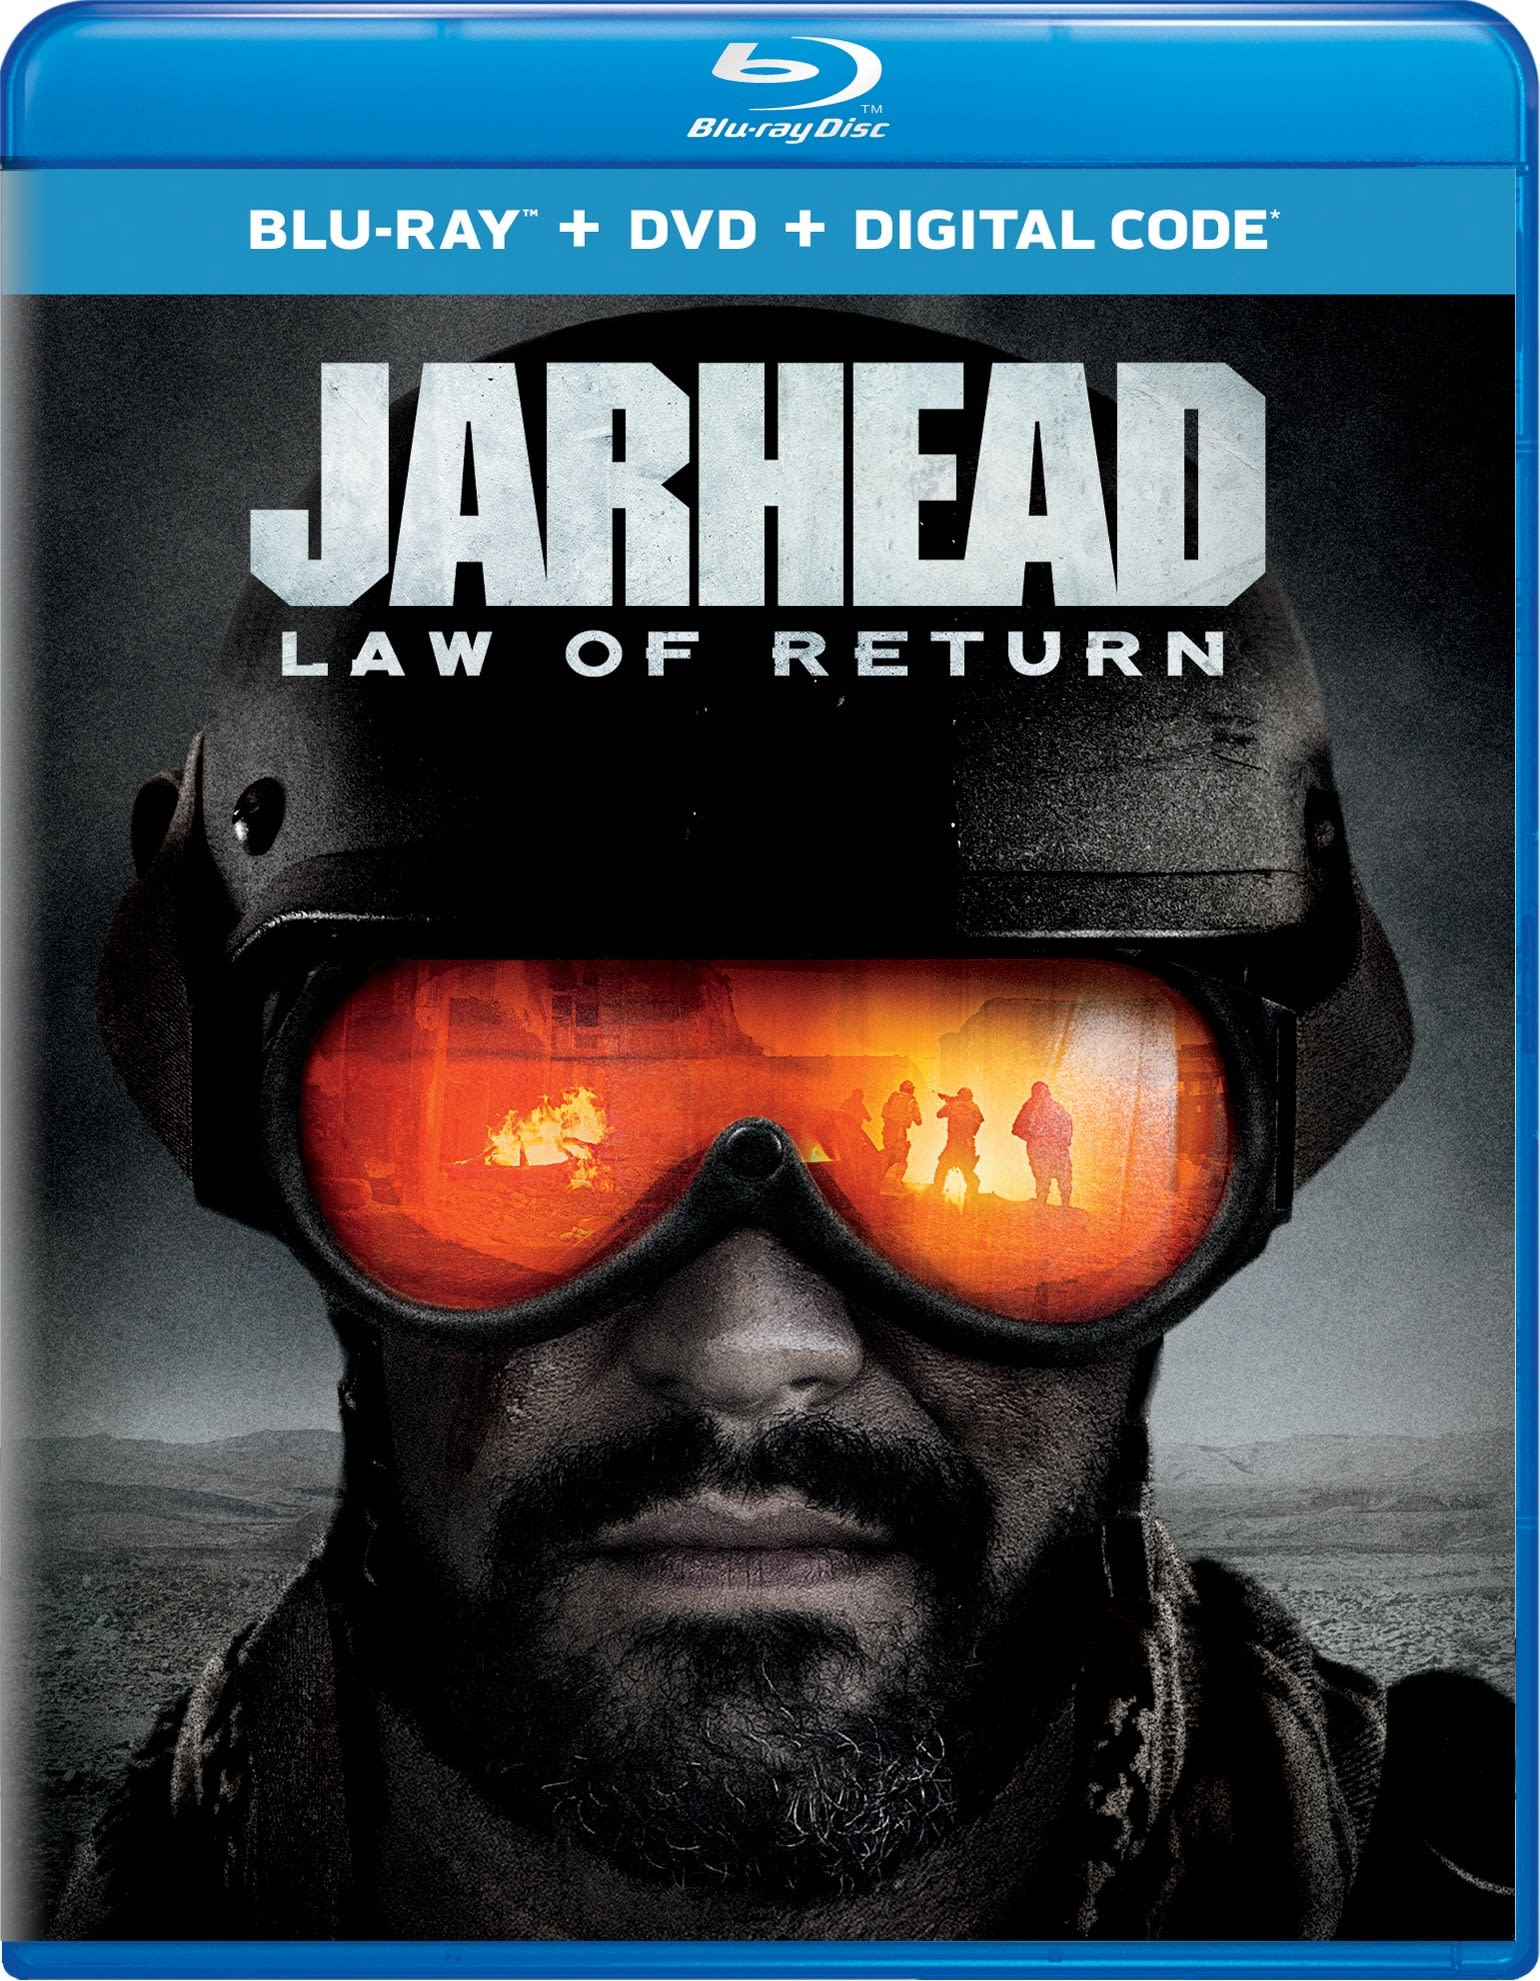 Jarhead: Law of Return (DVD + Digital) [Blu-ray]